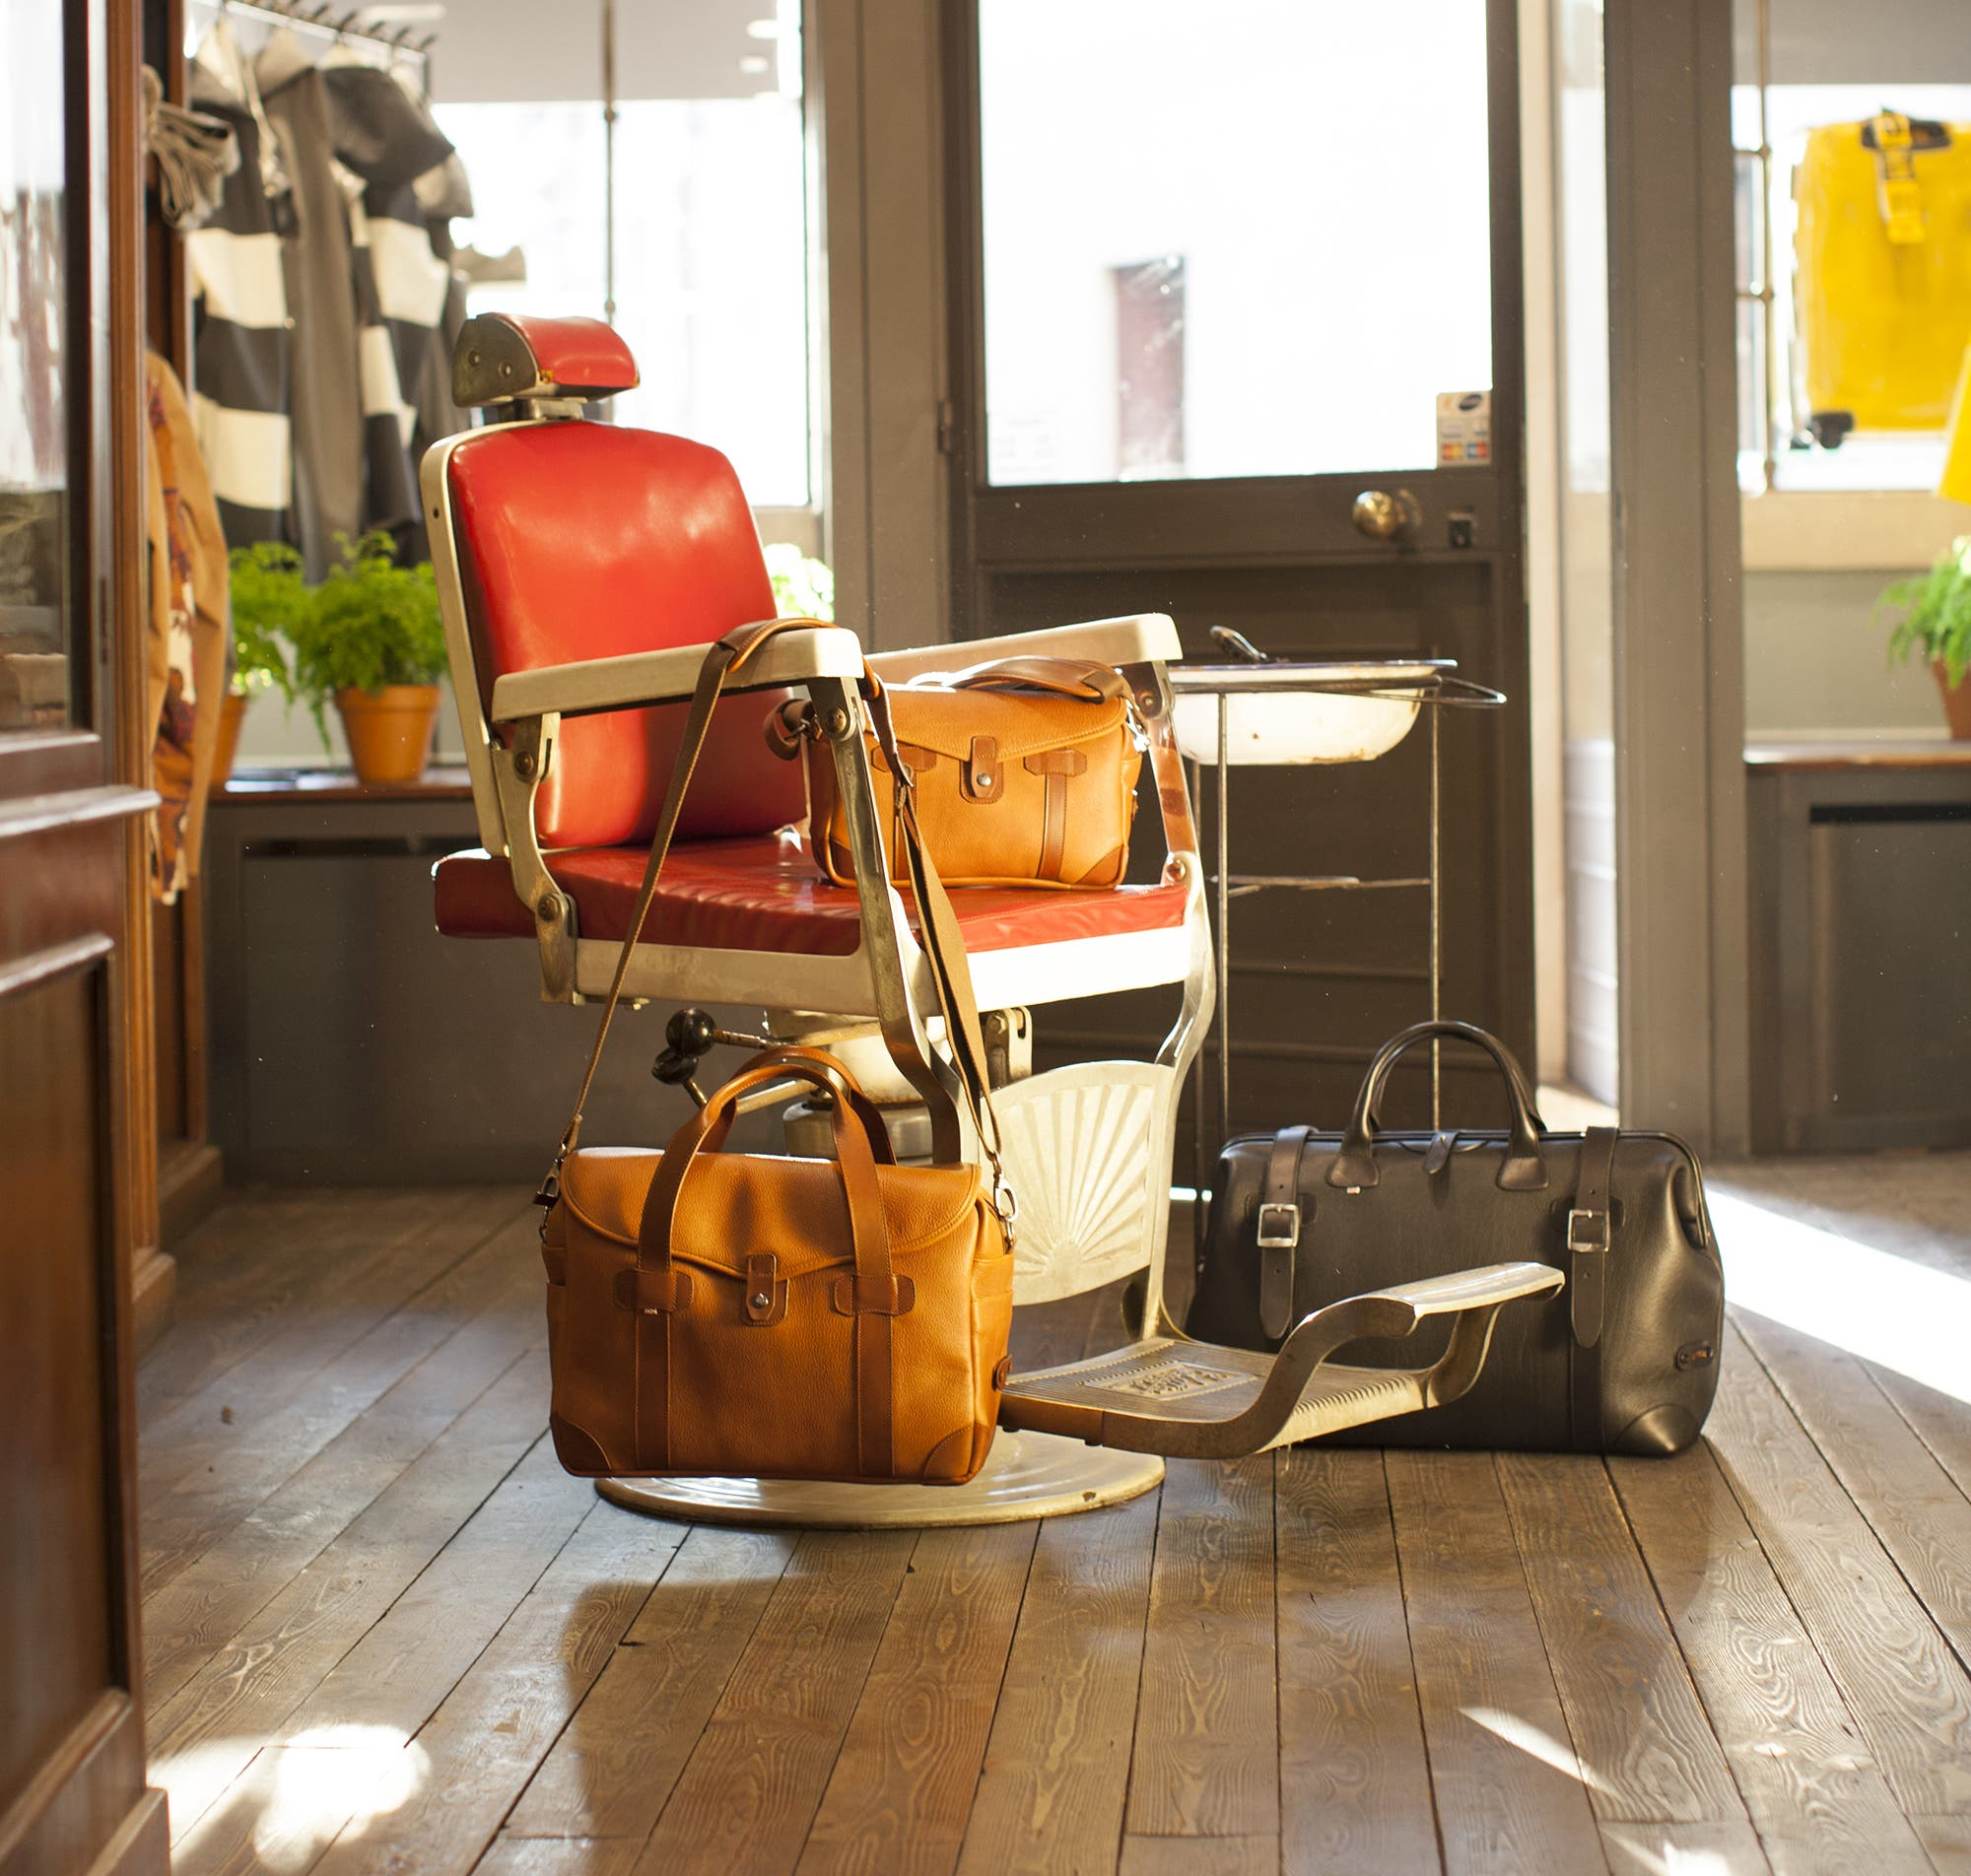 Barber Shop Camera Bags Are Made From Classy Italian Leather 4fa4d16fb6